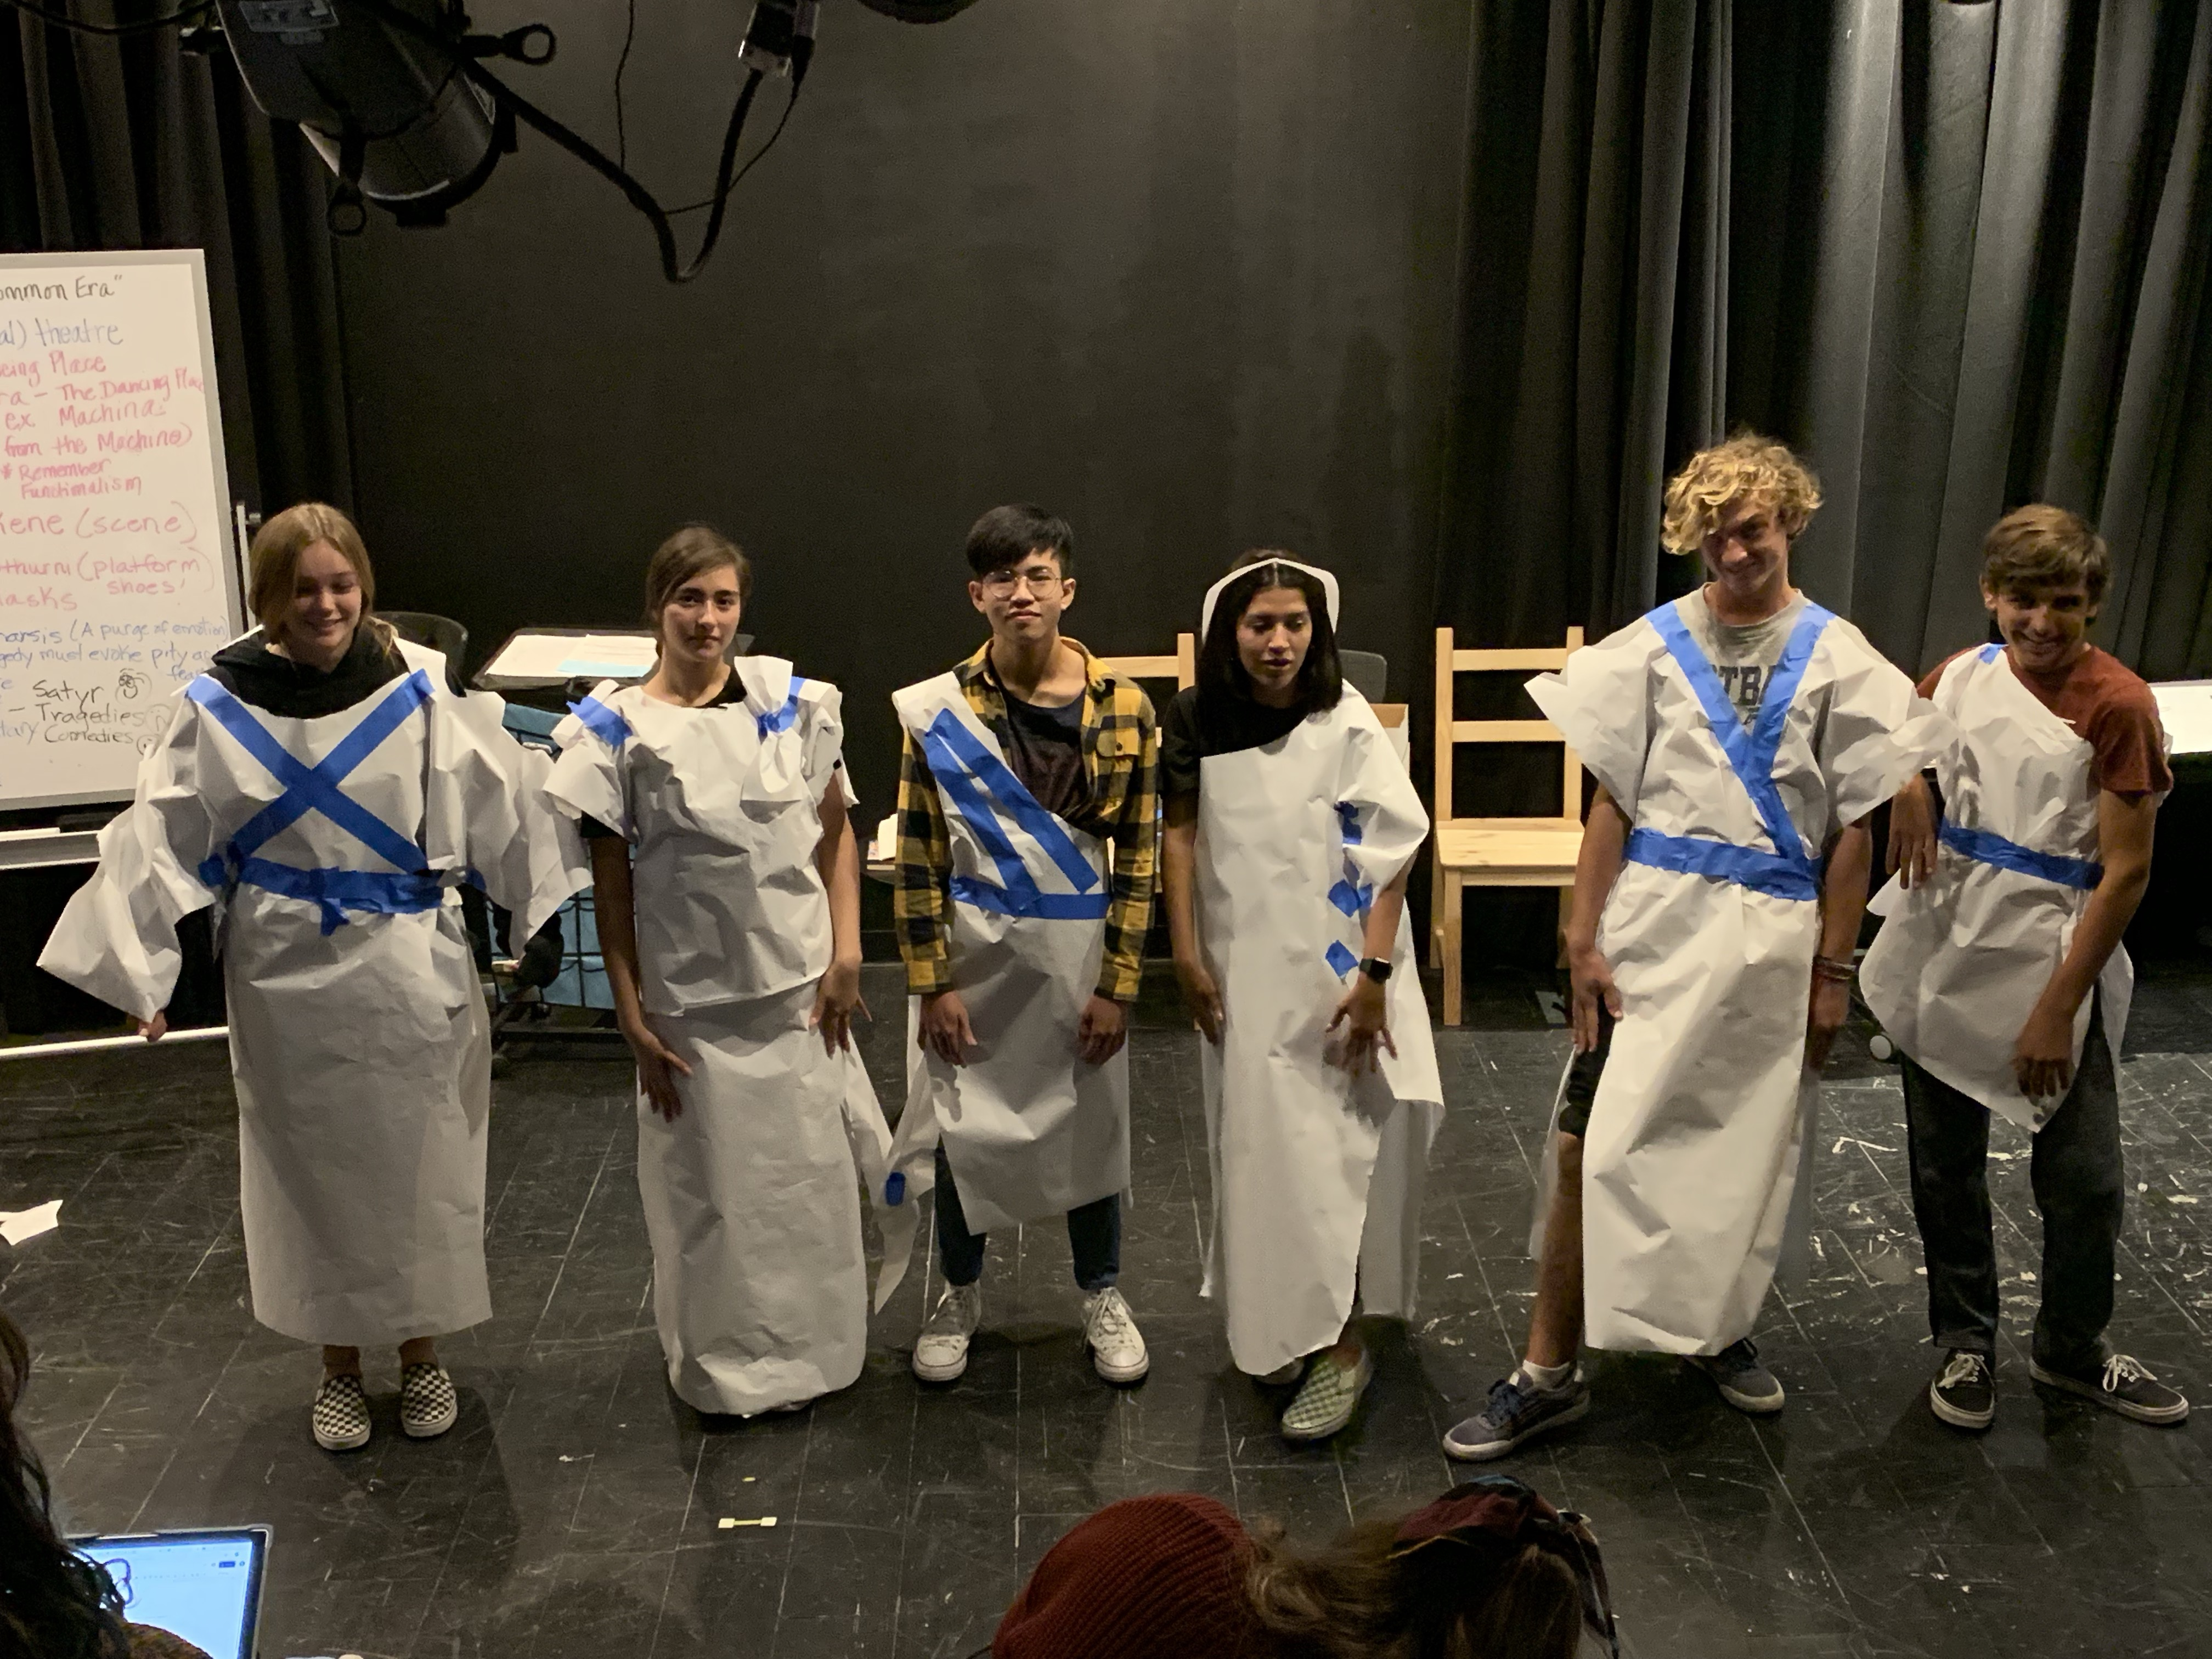 Drama students in togas they designed